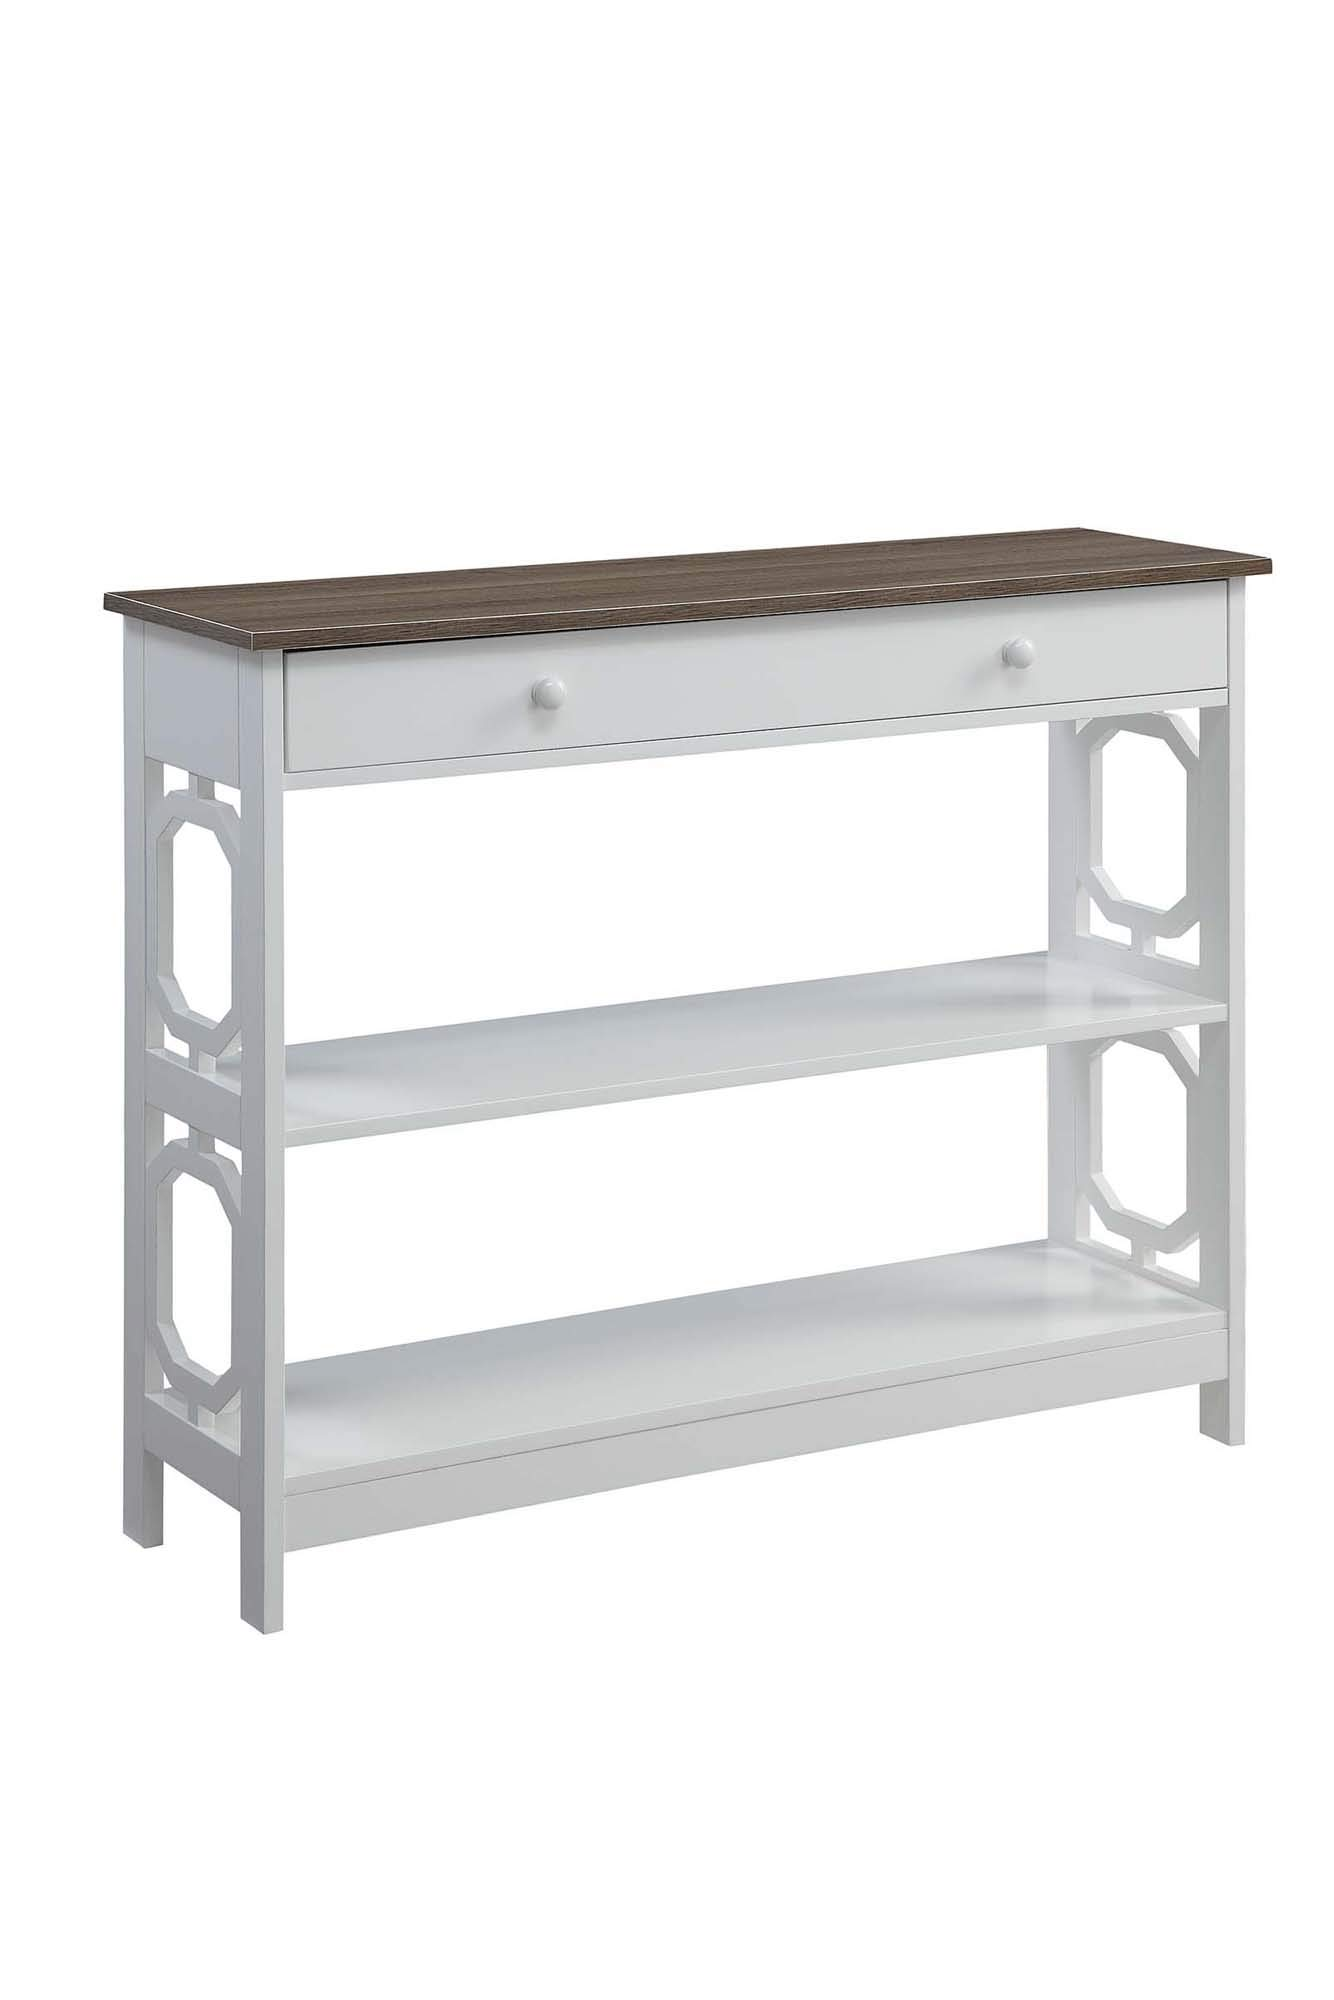 Convenience Concepts 203289WDFTW Omega 1-Drawer Console Table, Driftwood Top/White Frame by Convenience Concepts